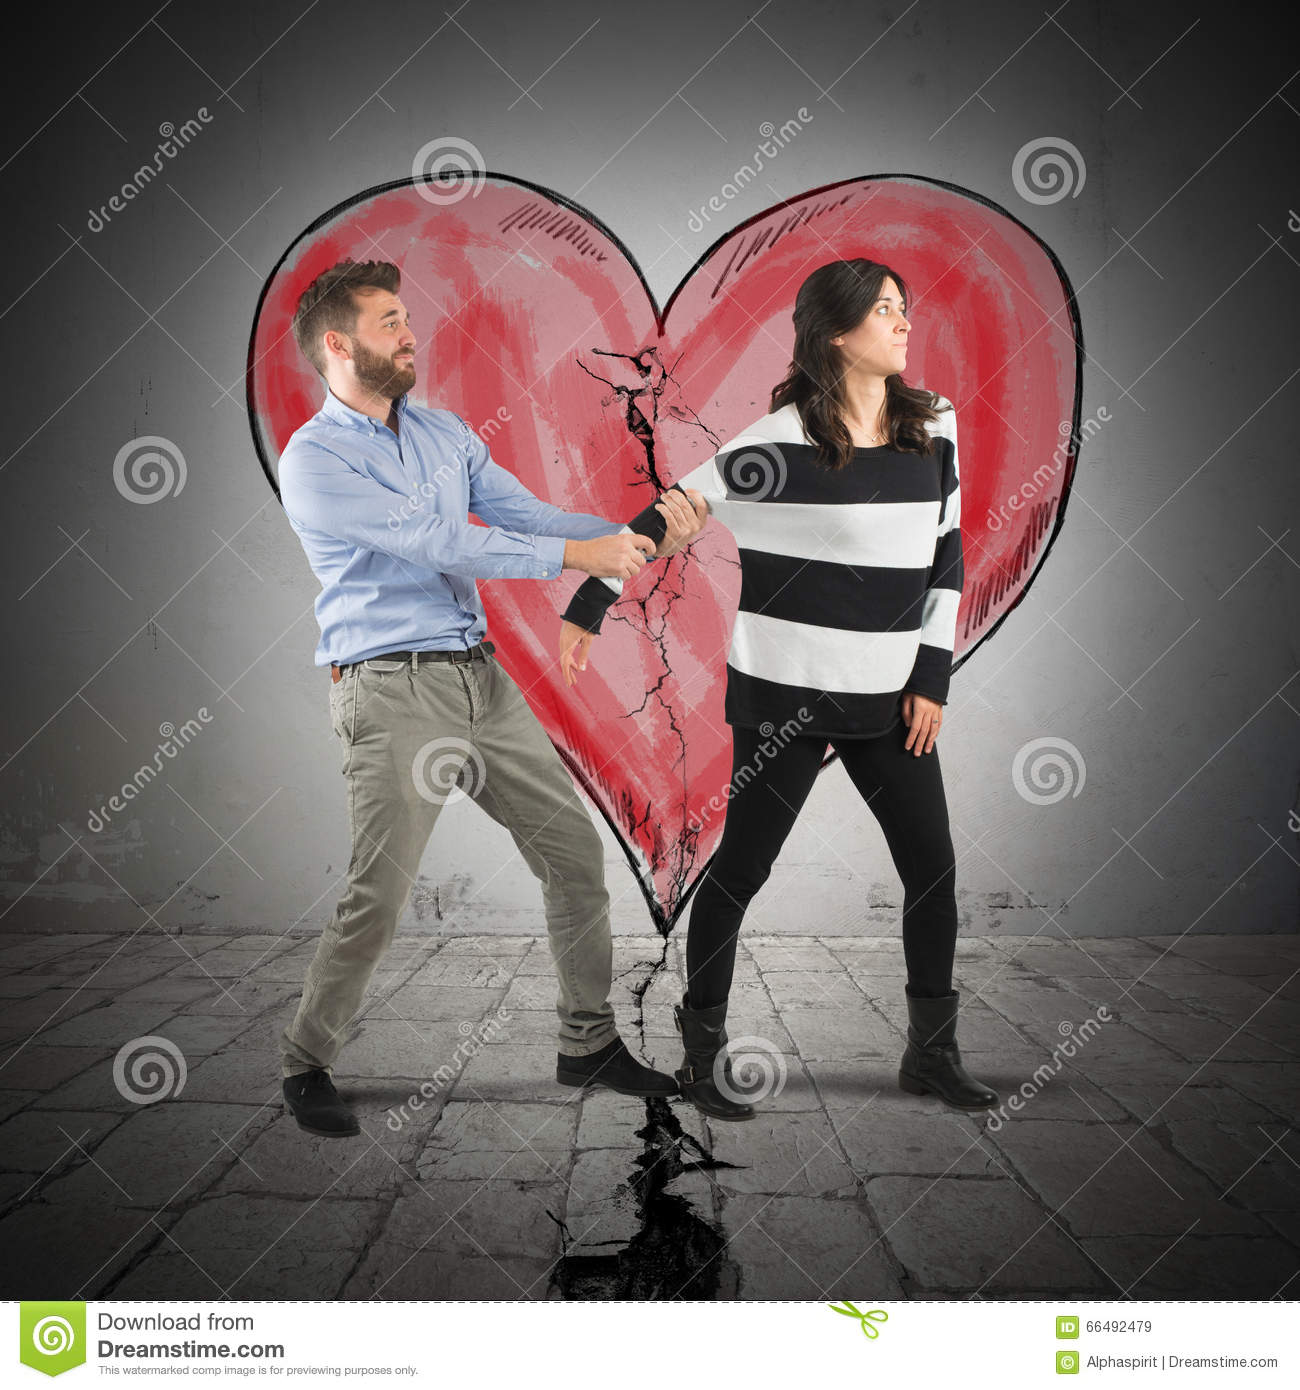 Break Heart Stock Image Image Of Conflict Anhappy Argument 66492479